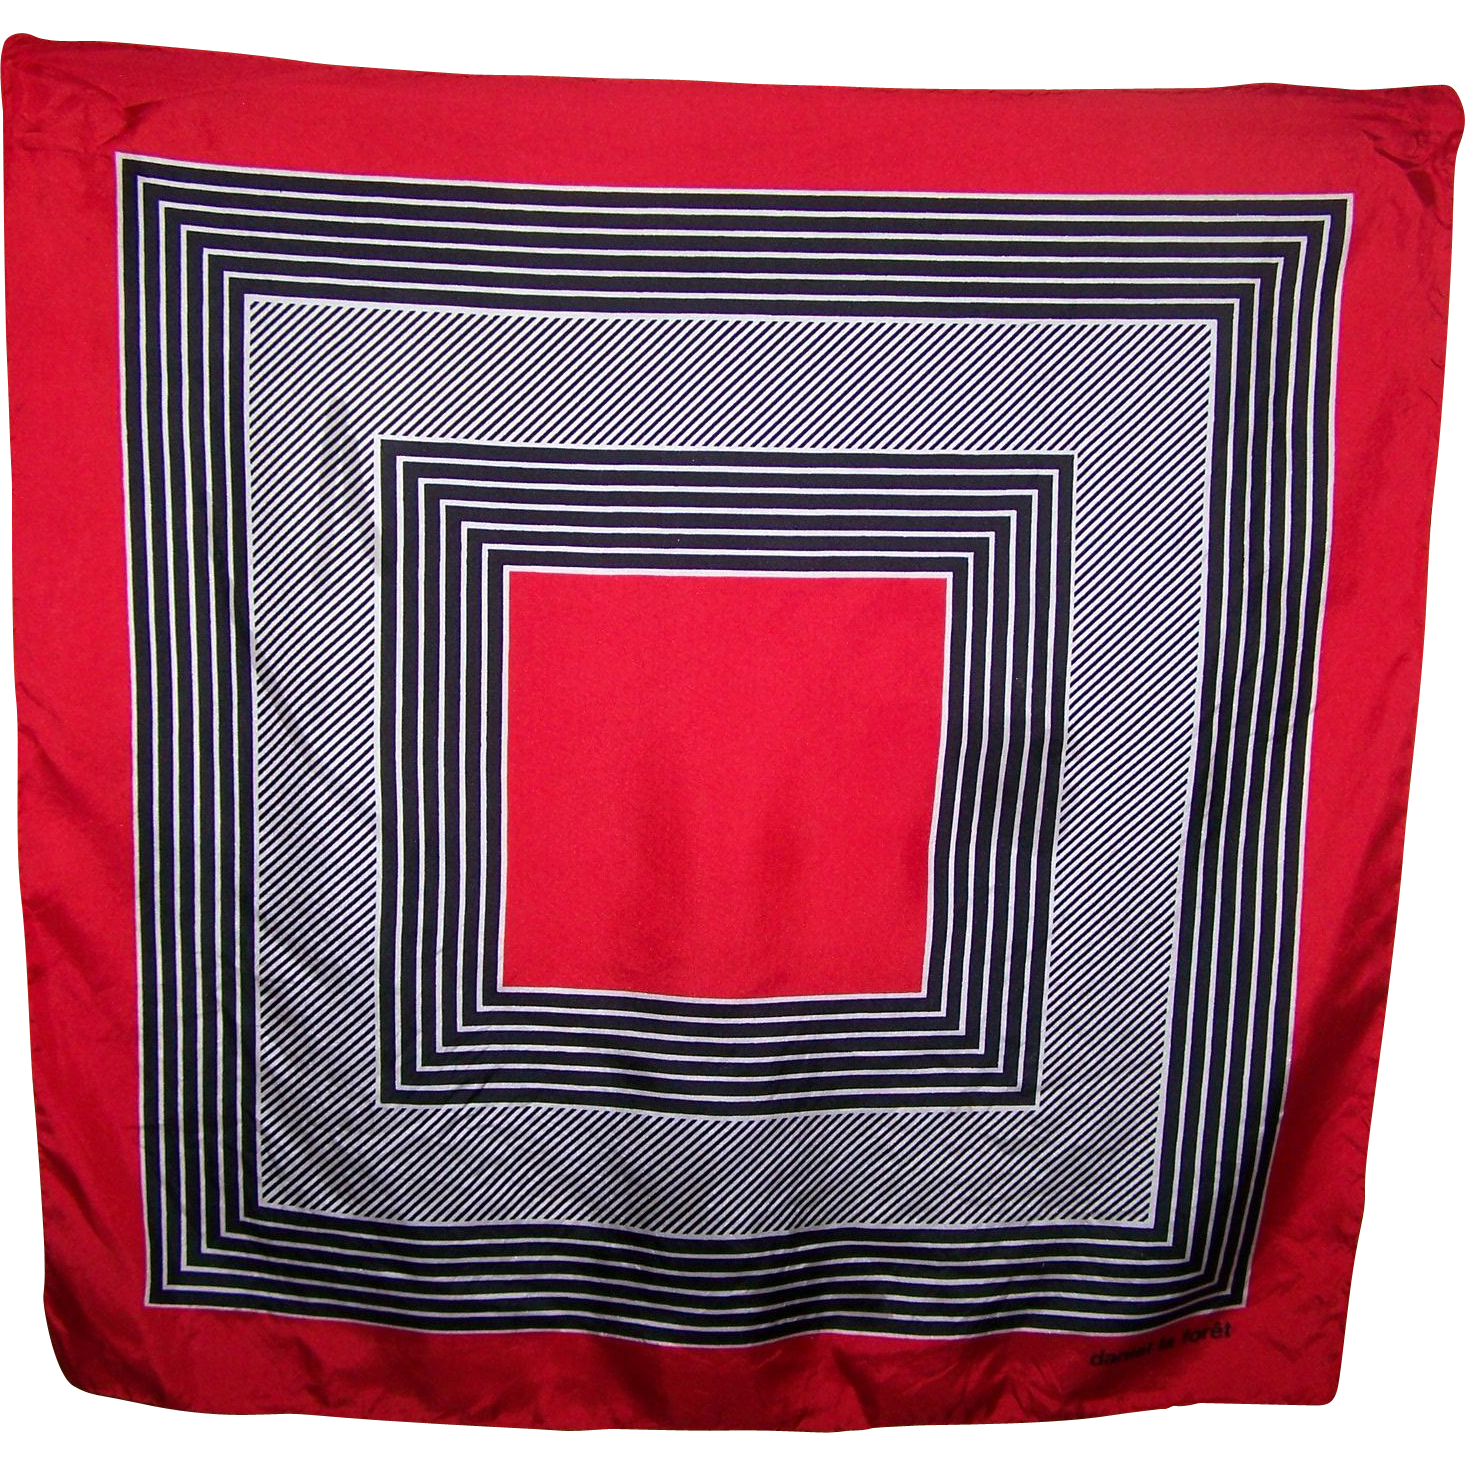 Geometric Op Art Illusion Fashion Print Scarf Designer daniel la foret Red White Black